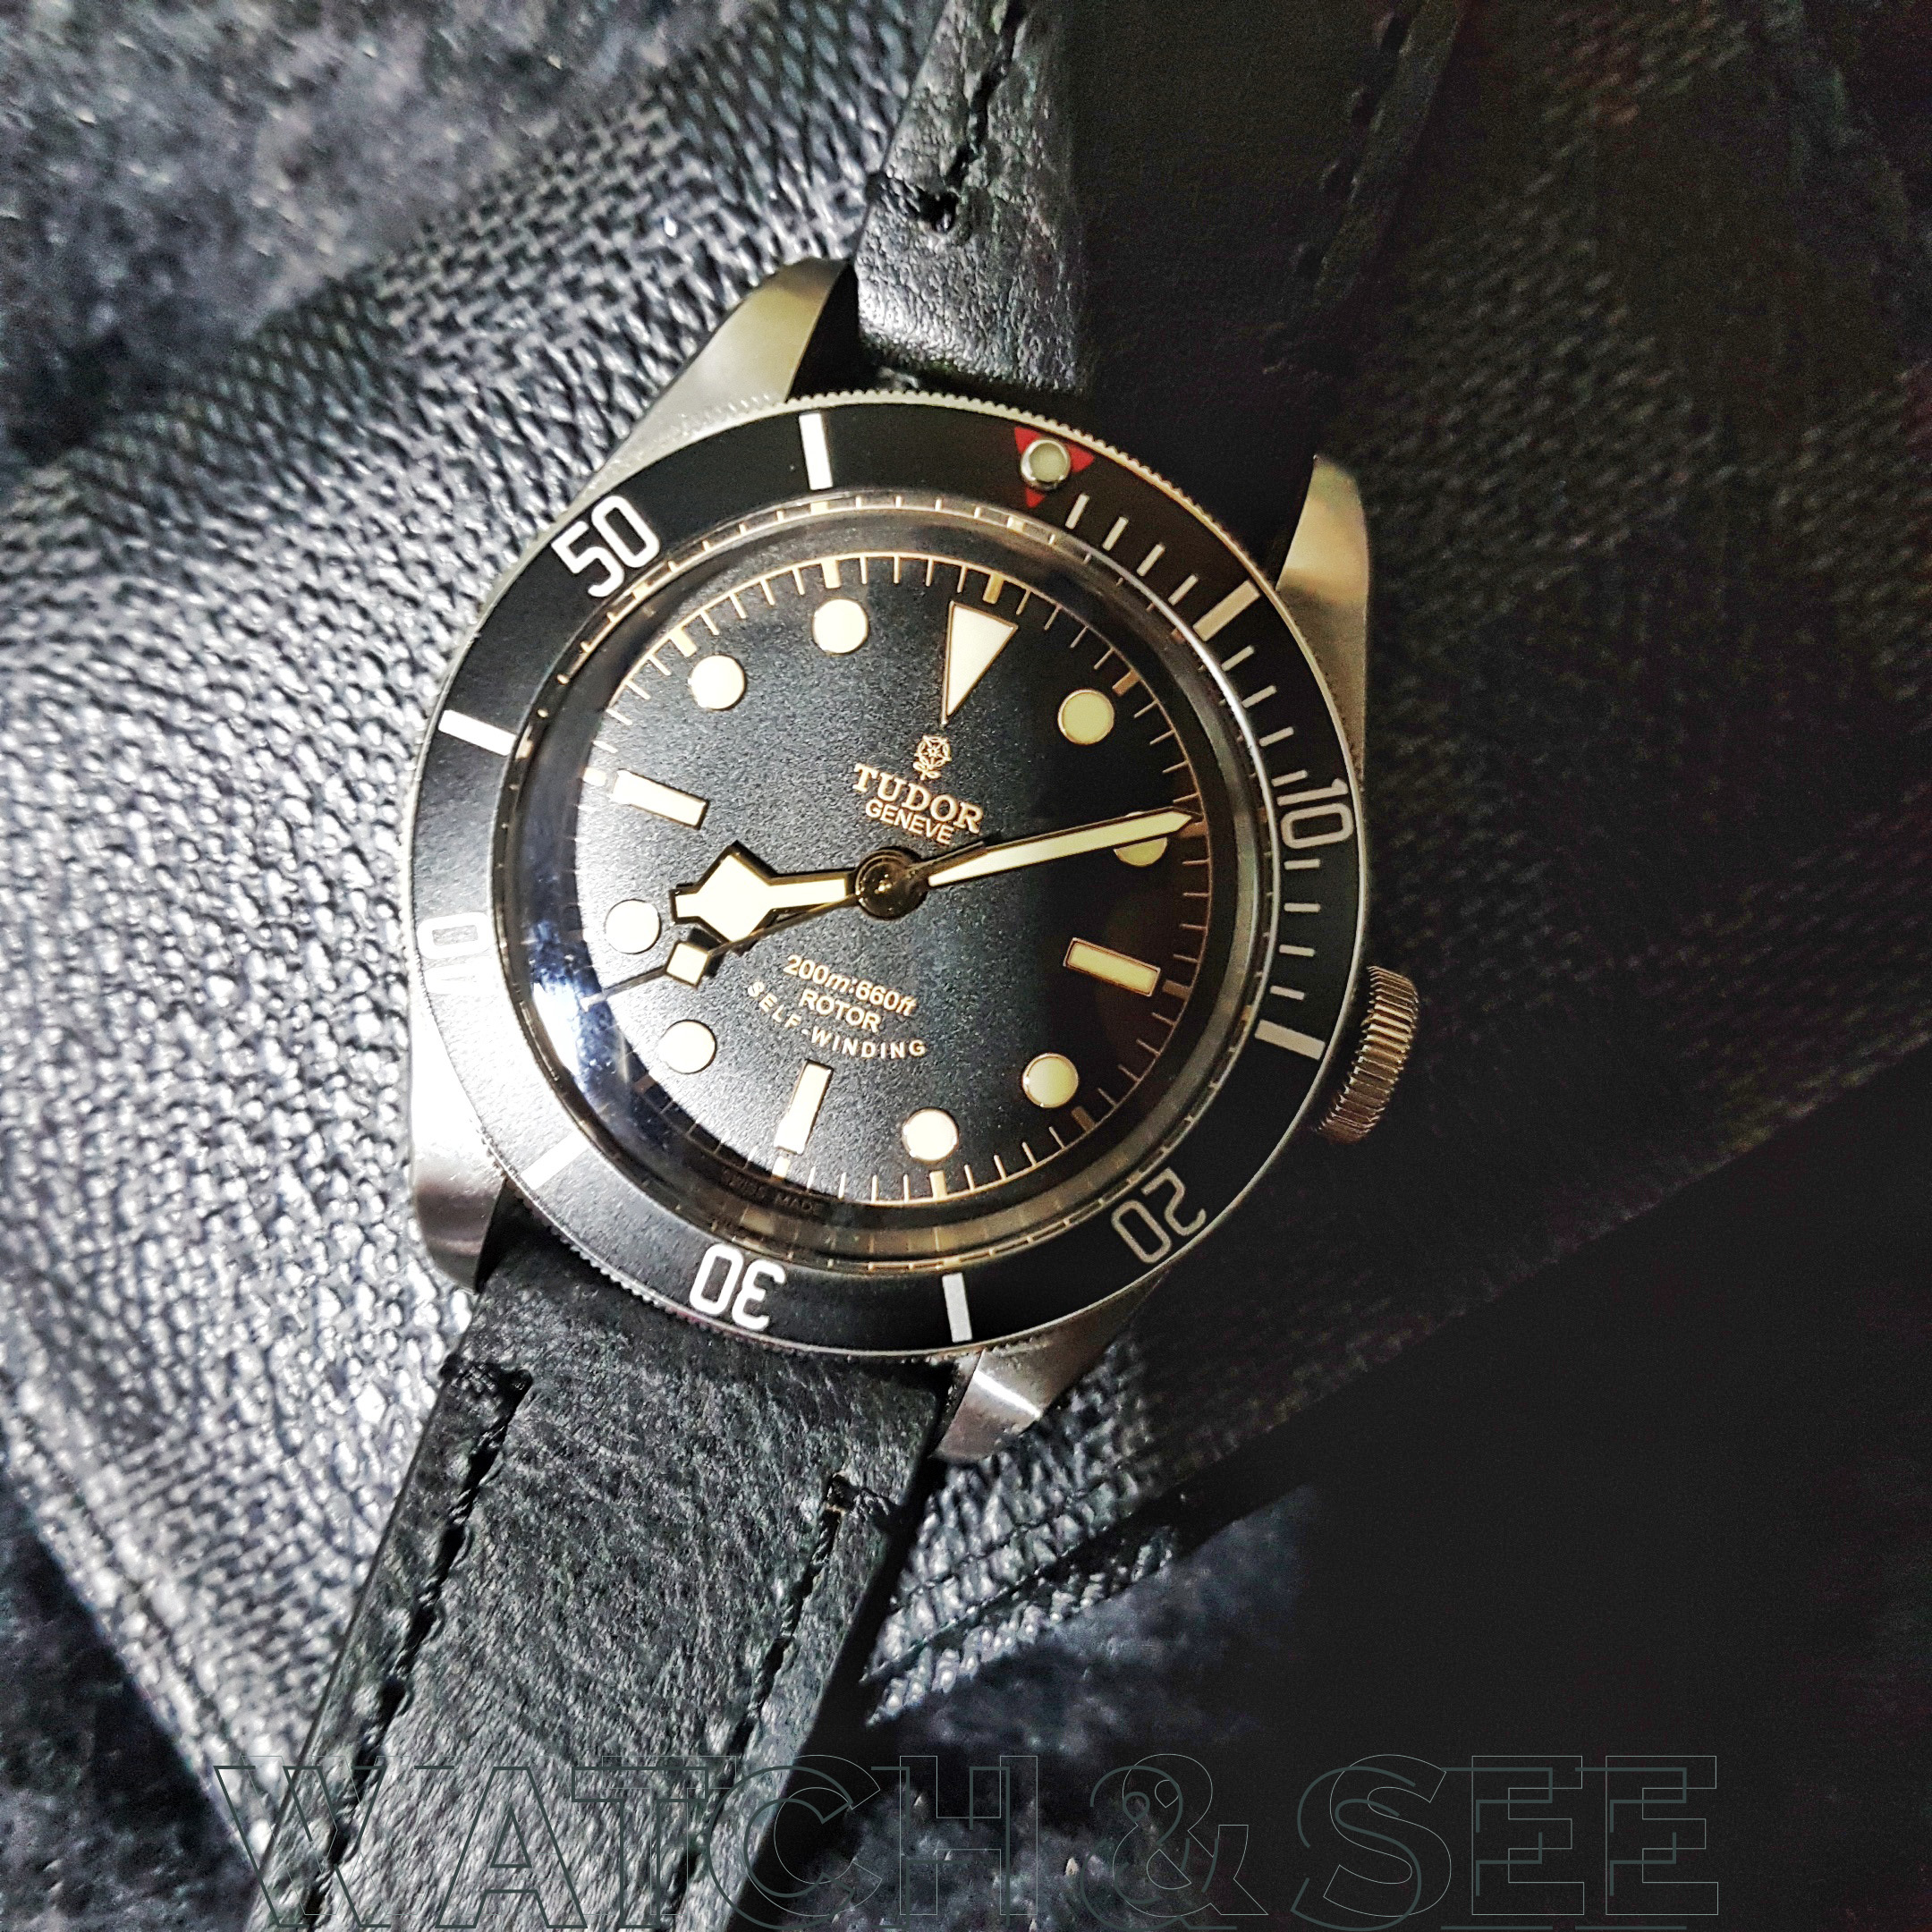 square watches reference leather black product strap tag monaco classic on dial automatic heuer watch